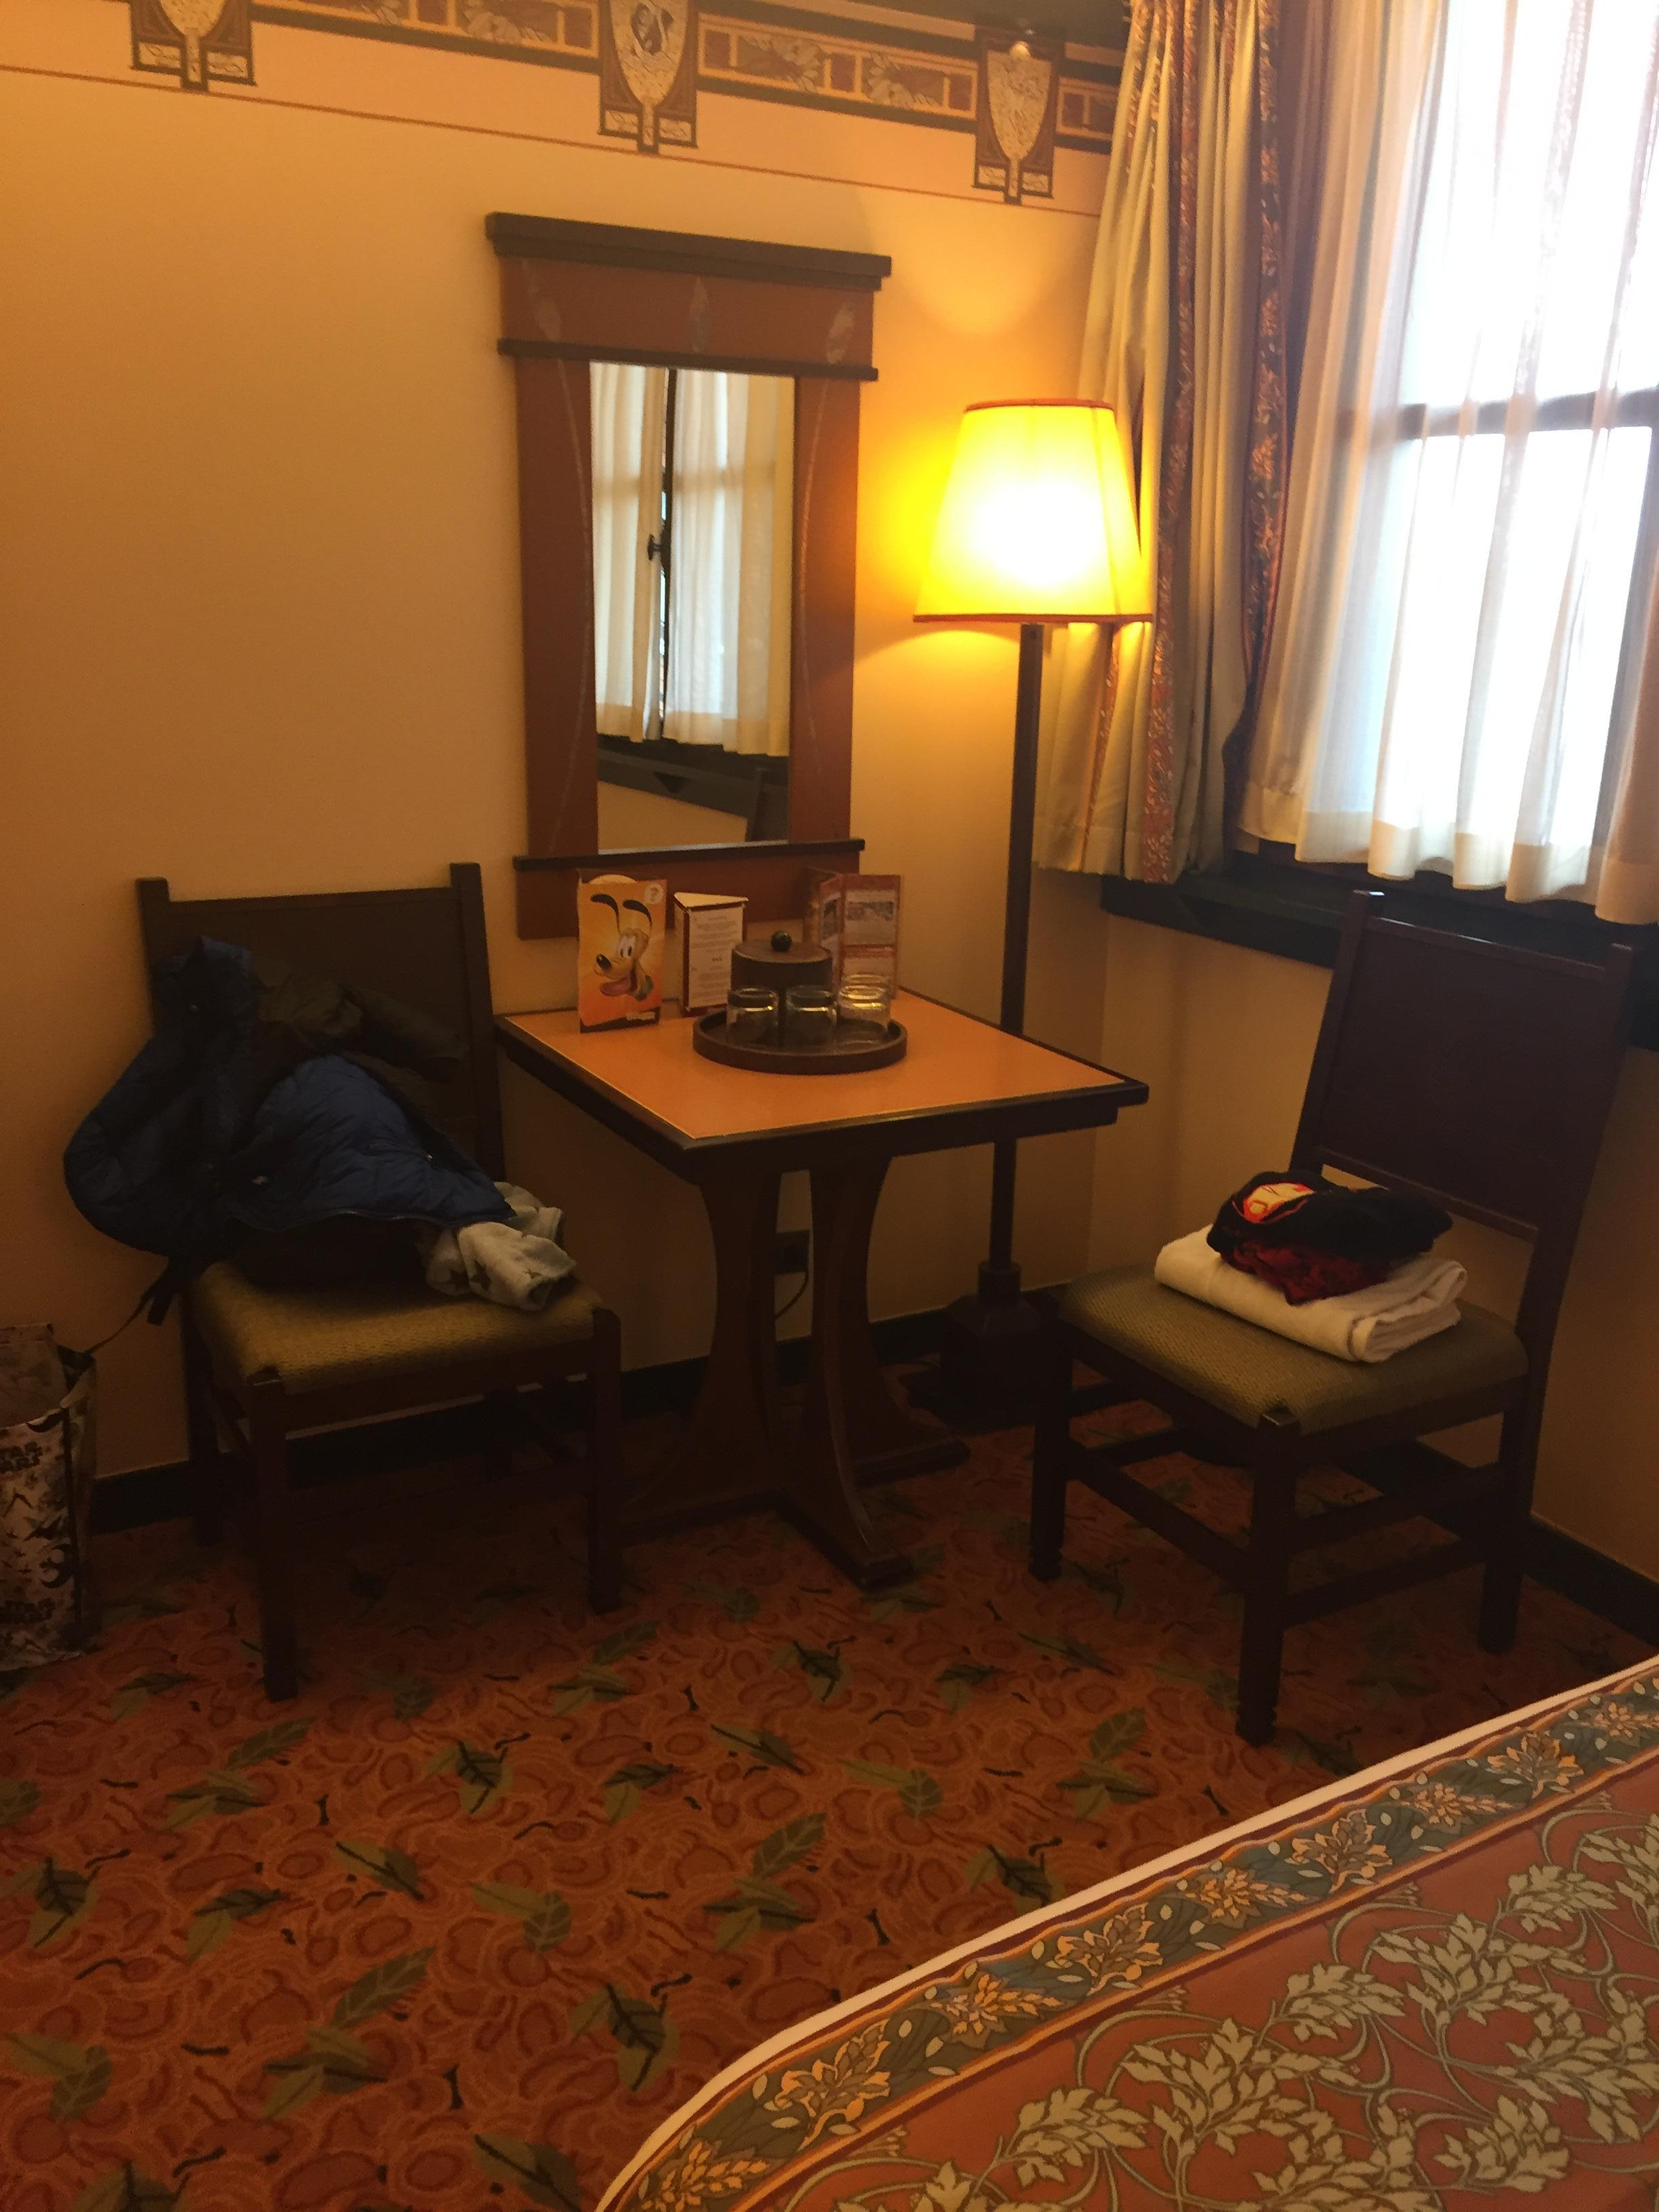 Disney s Sequoia Lodge Reviews s & Rates ebookers